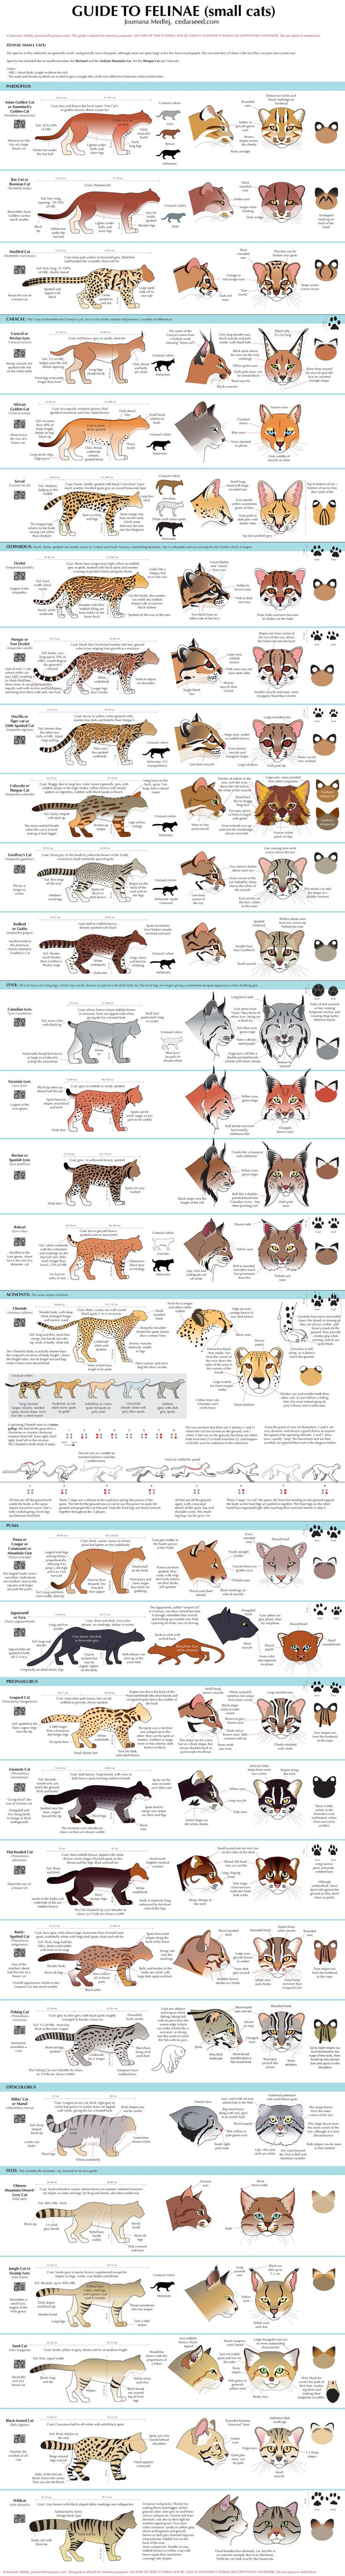 Guide to Little Cats - by Majnouna, via deviantART   ...Small BIG Cats...